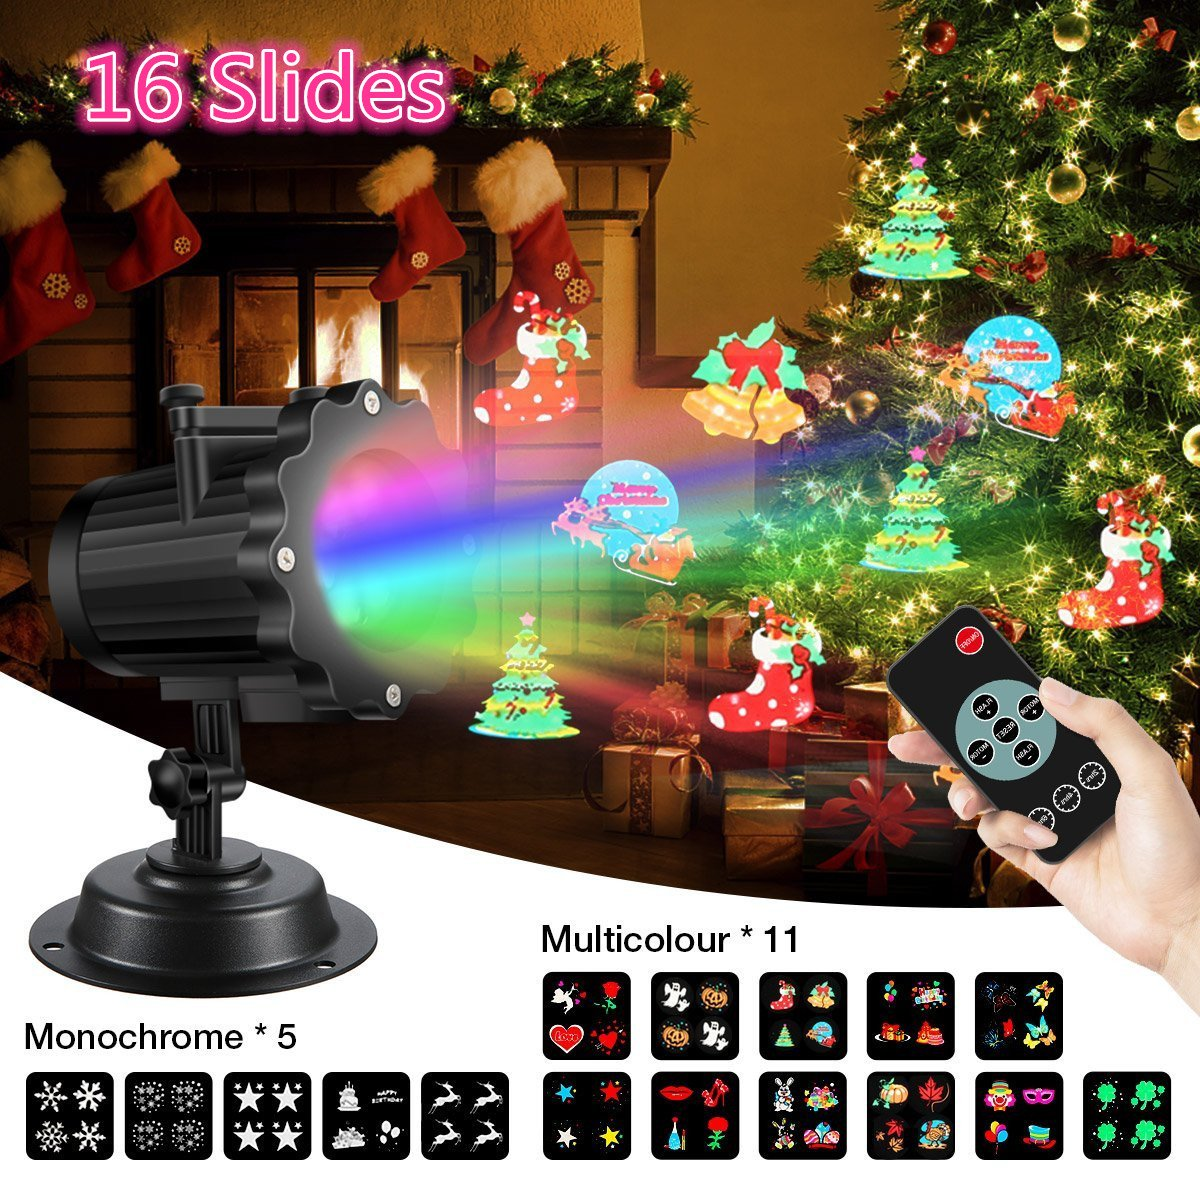 (UK SHIPPING)LED Light Projector,SGODDE HD16 Switchable Slides Party Light Projector,Light Snowflakes Projector,Multi Dynamic Landscape Projector Lamp with Switchable Slides Patterns & Thermal Module,Remote Control,IP65 Waterproof & Cold Resistanc